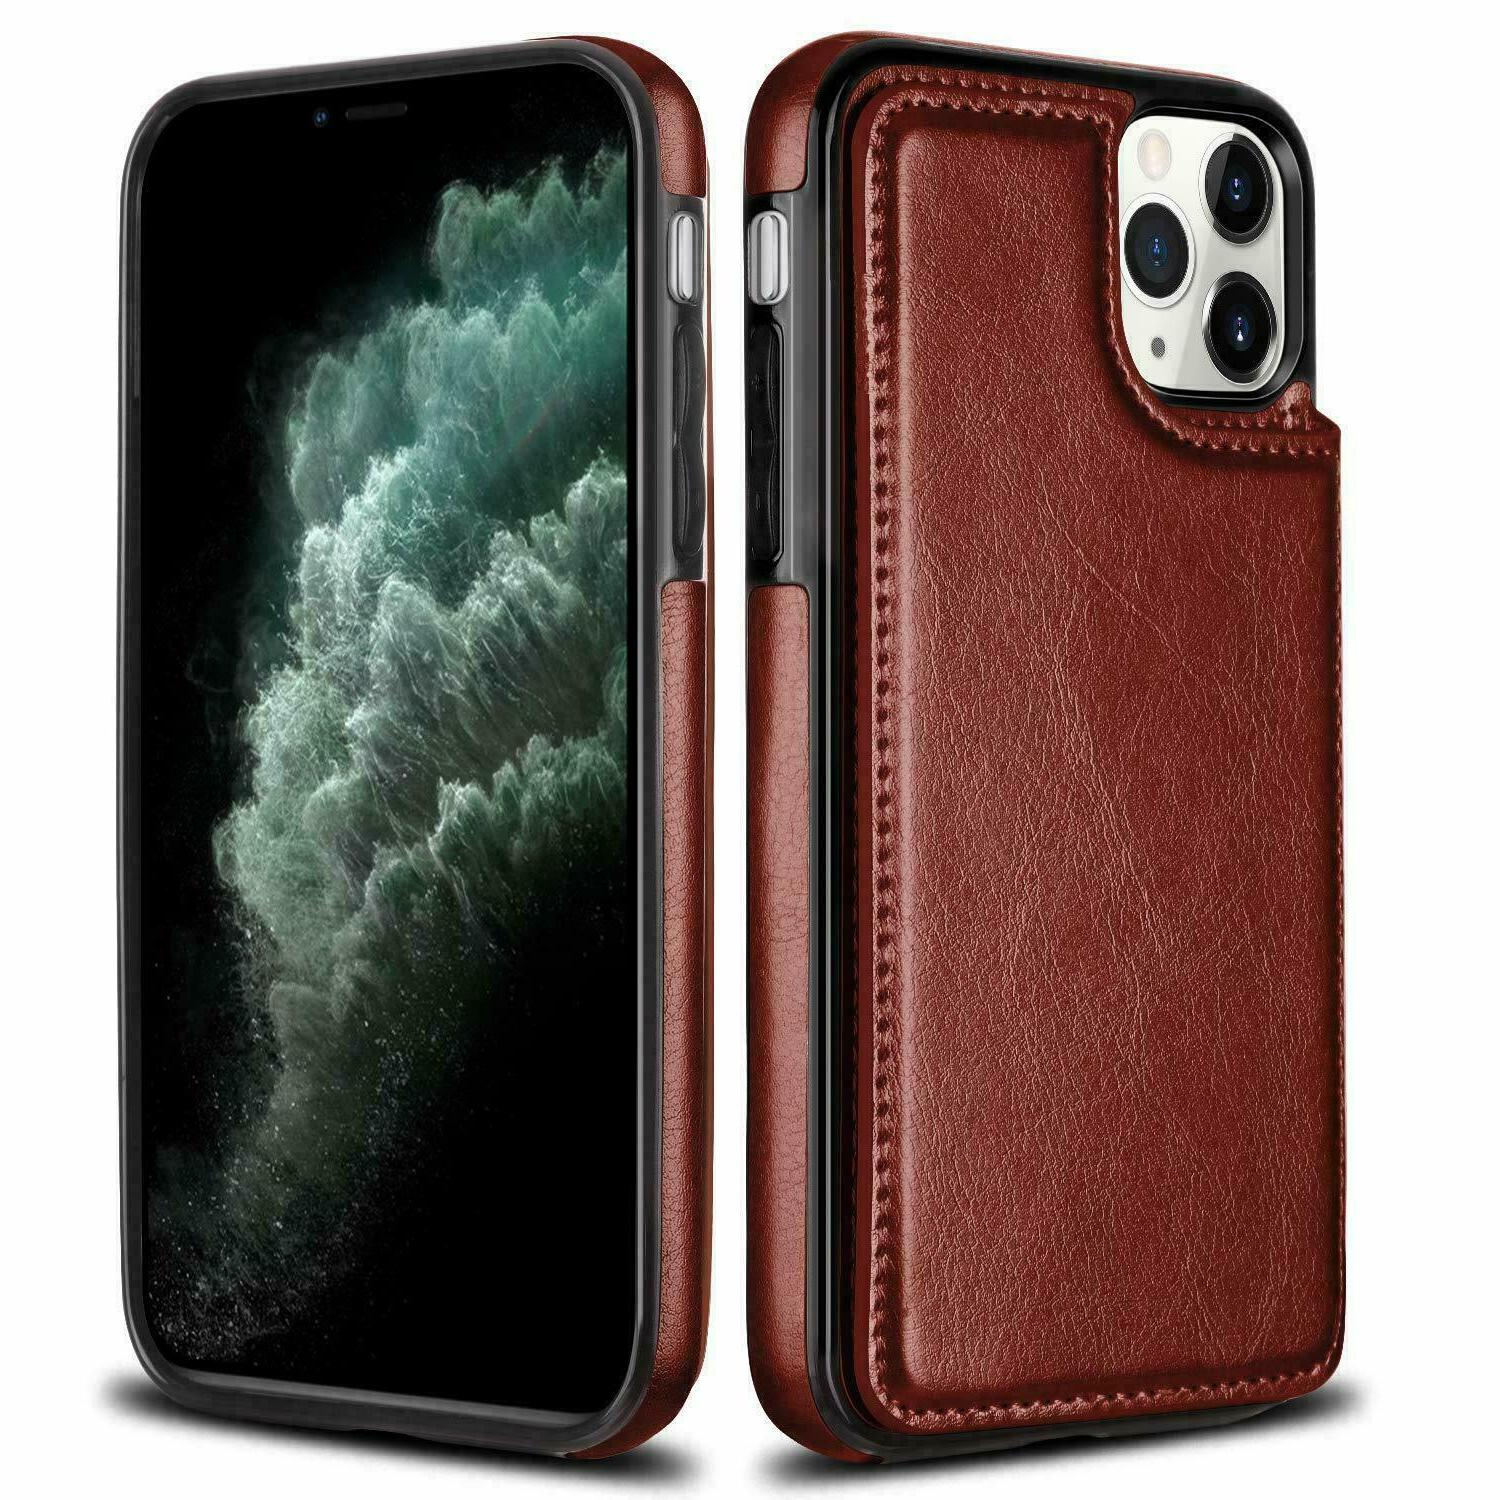 Pro / Cover Leather Magnetic Kickstand for